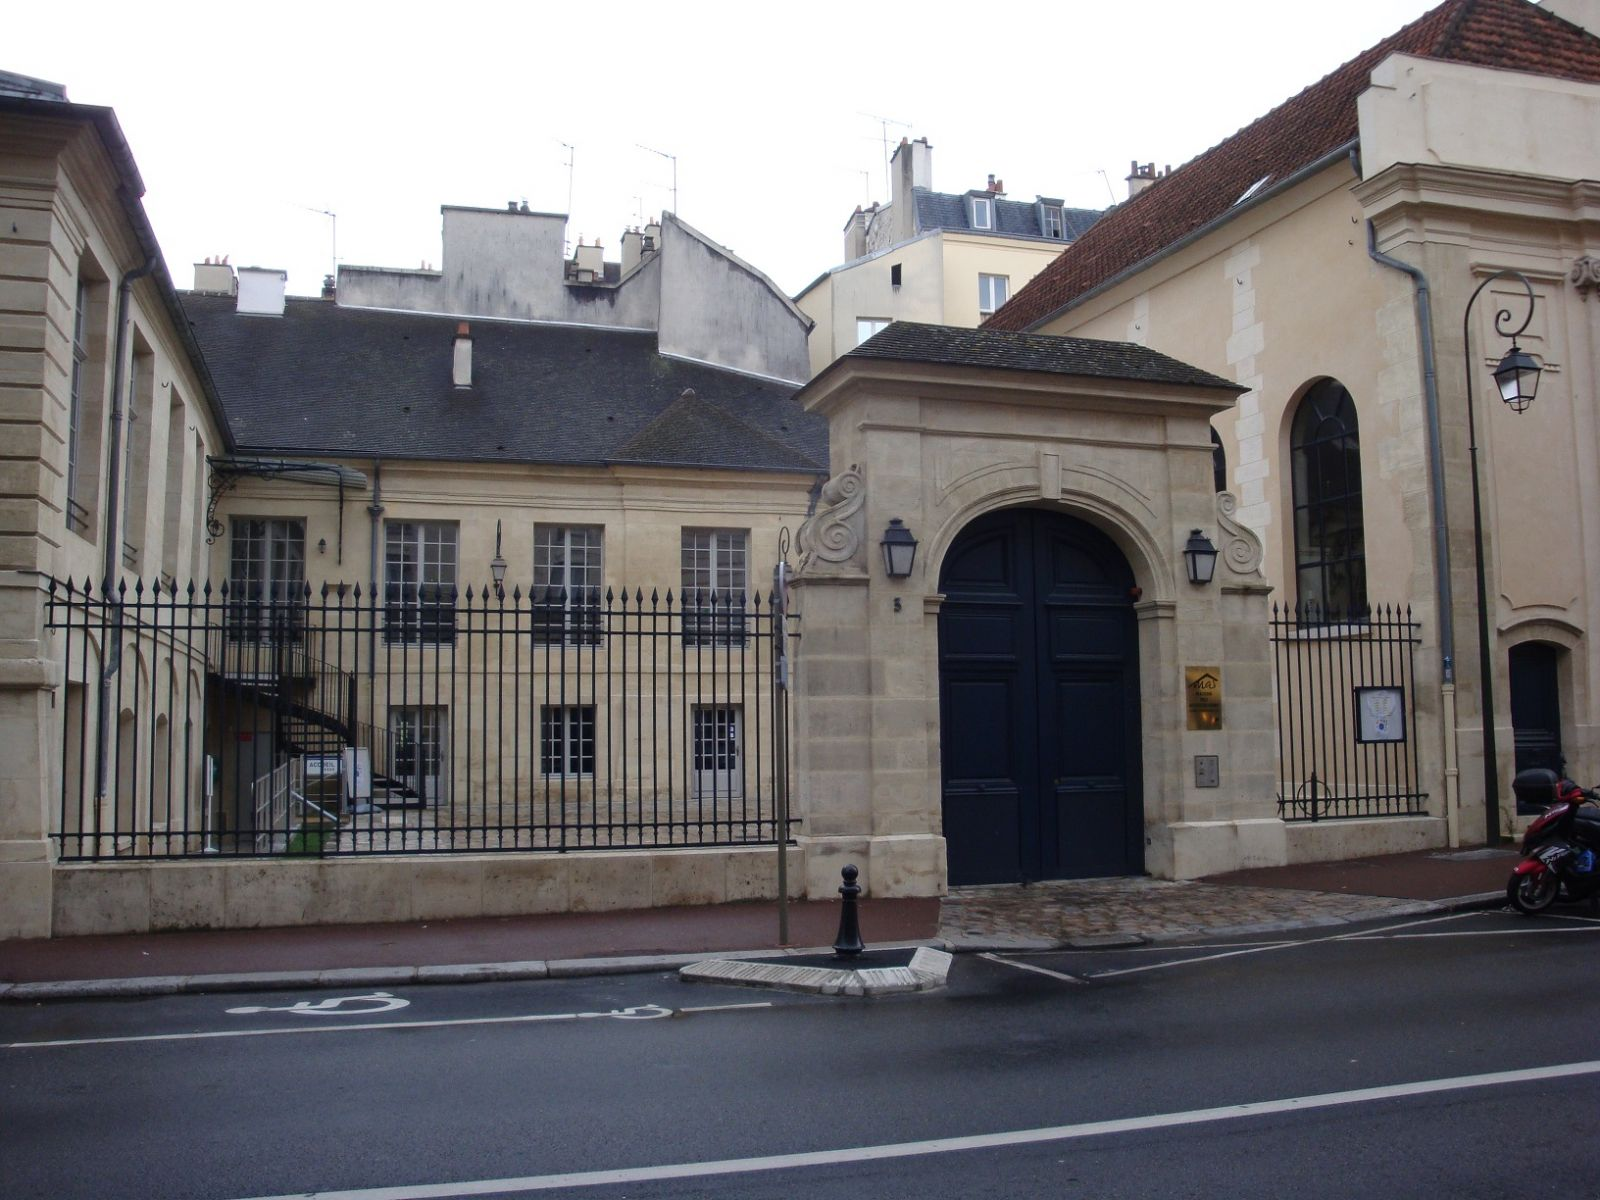 Maison des Associations de Saint Germain en Laye